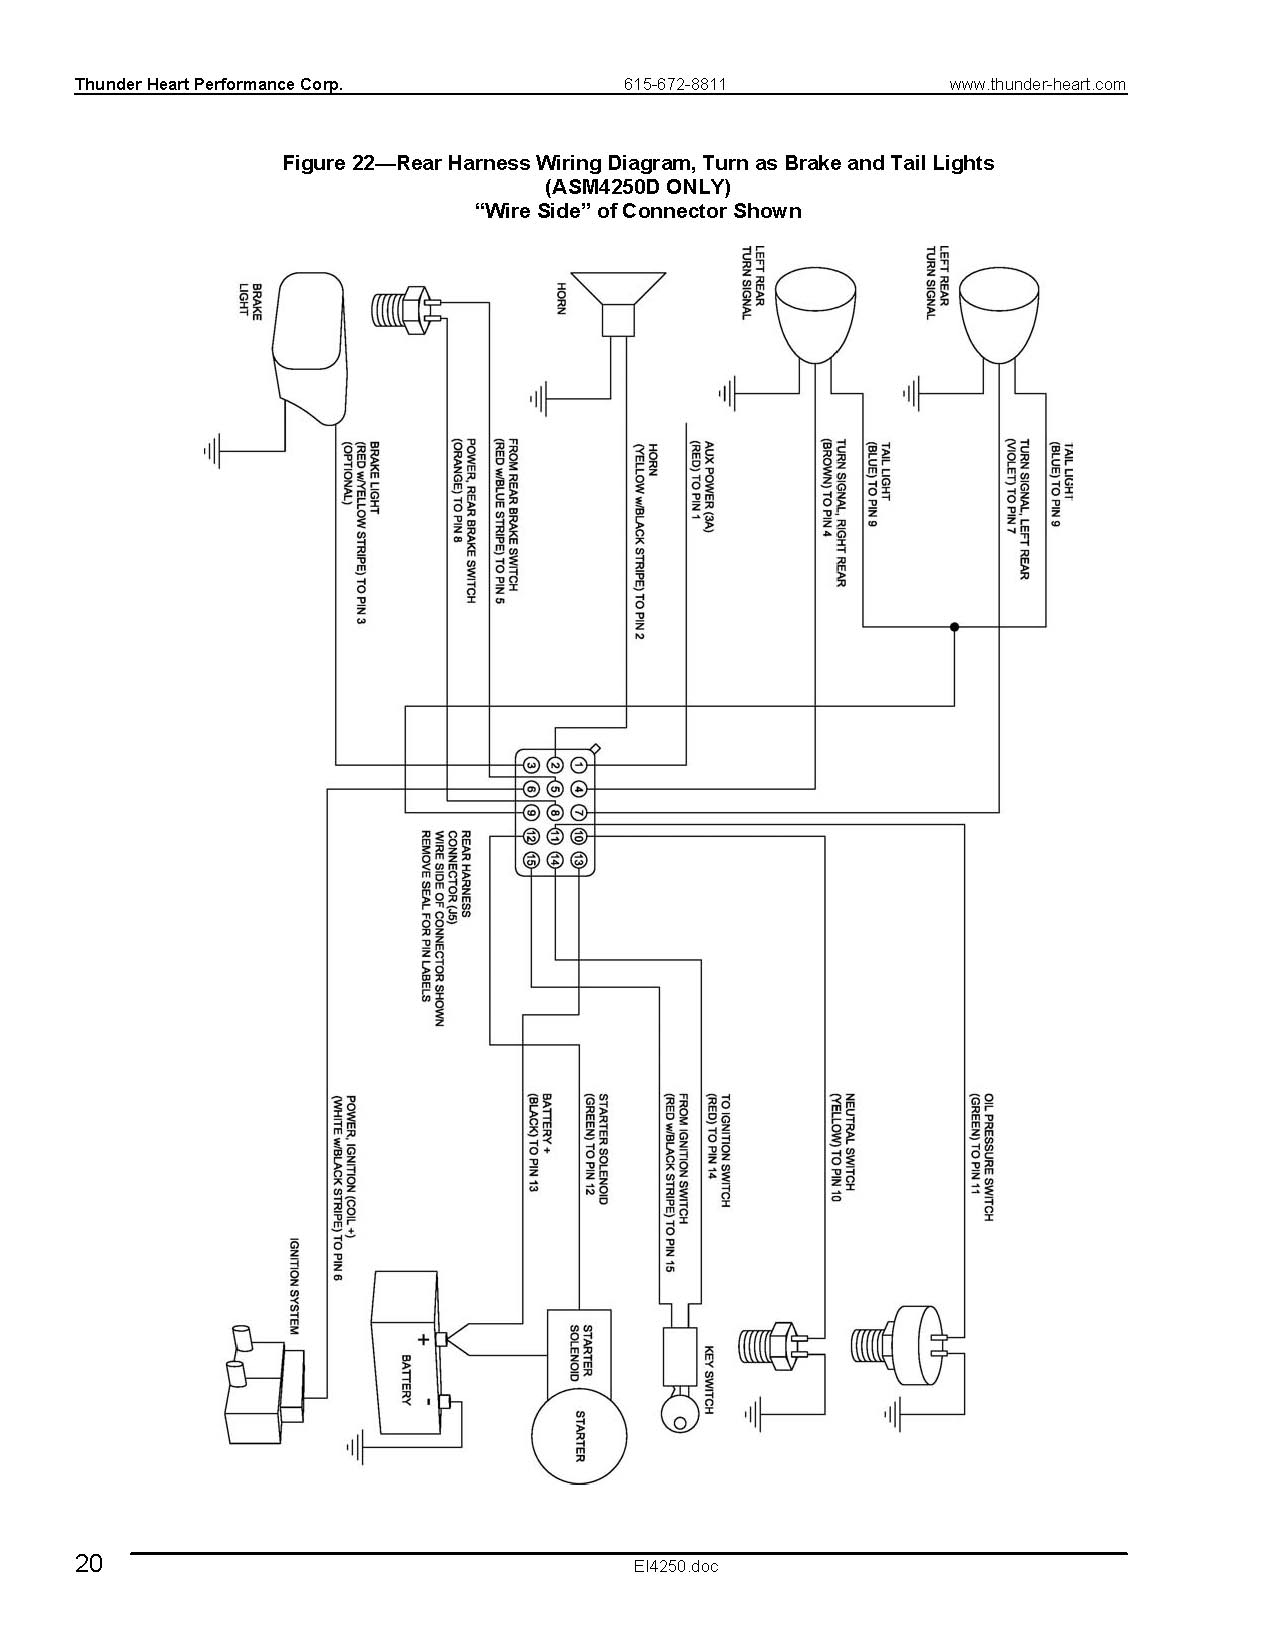 thunderheart wiring harness diagram